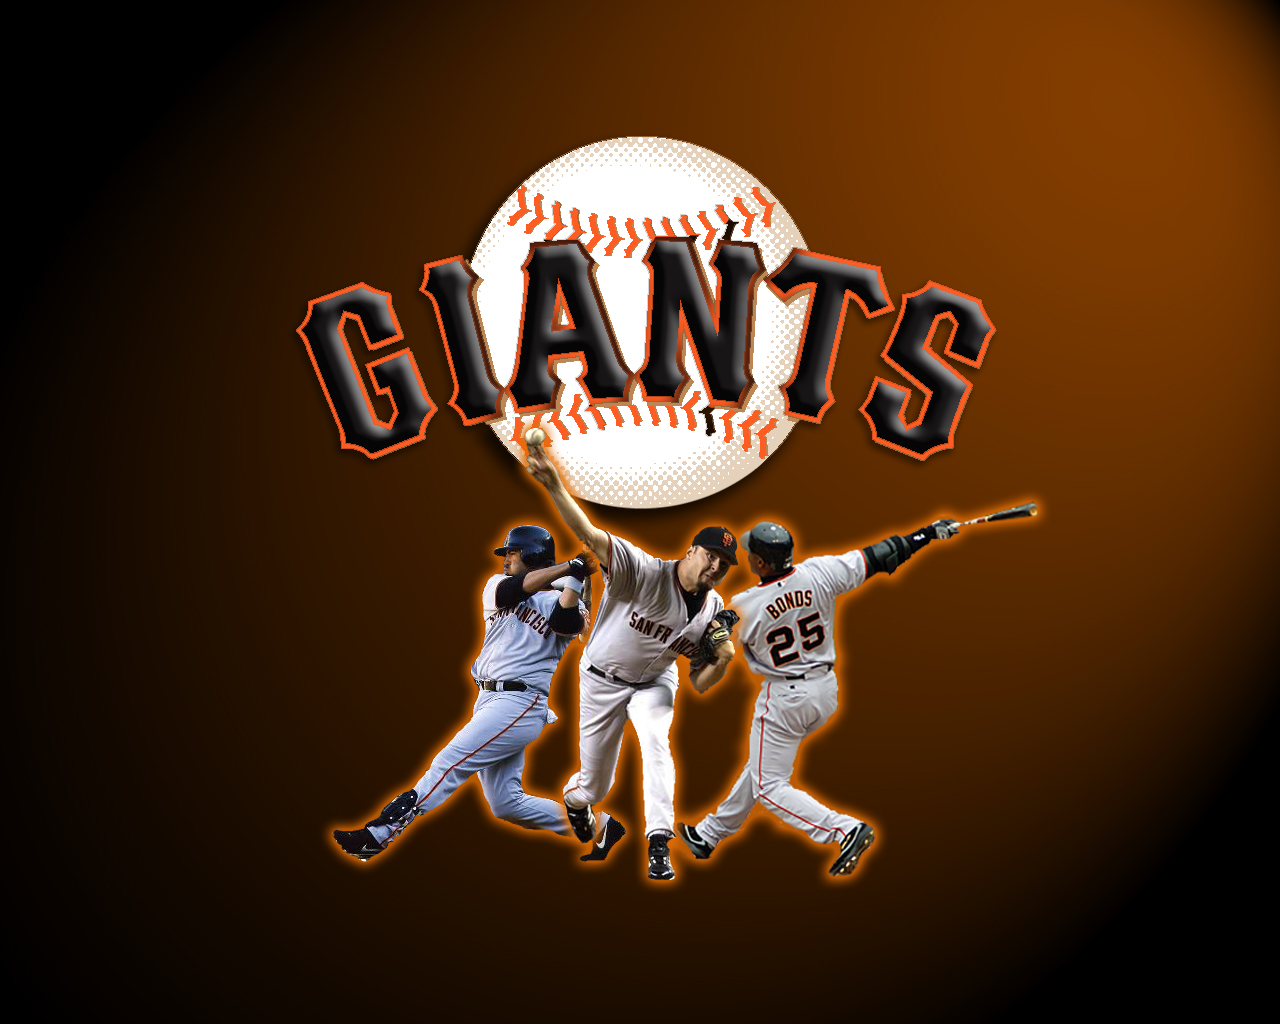 Sf giants funny quotes quotesgram - Sf giants schedule wallpaper ...